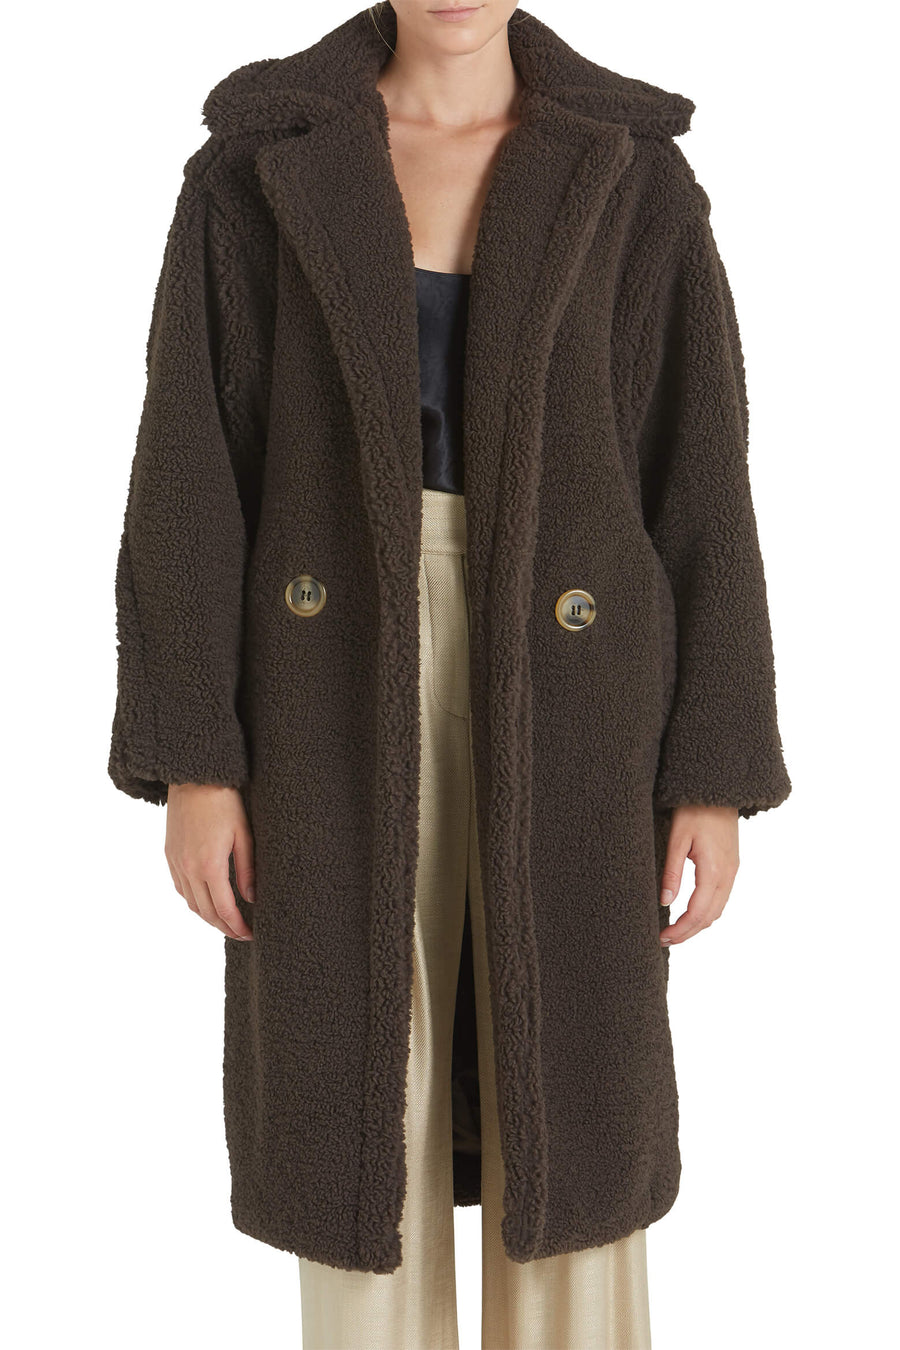 Apparis Daryna Faux Shearling Coat in Eboni from The New Trend